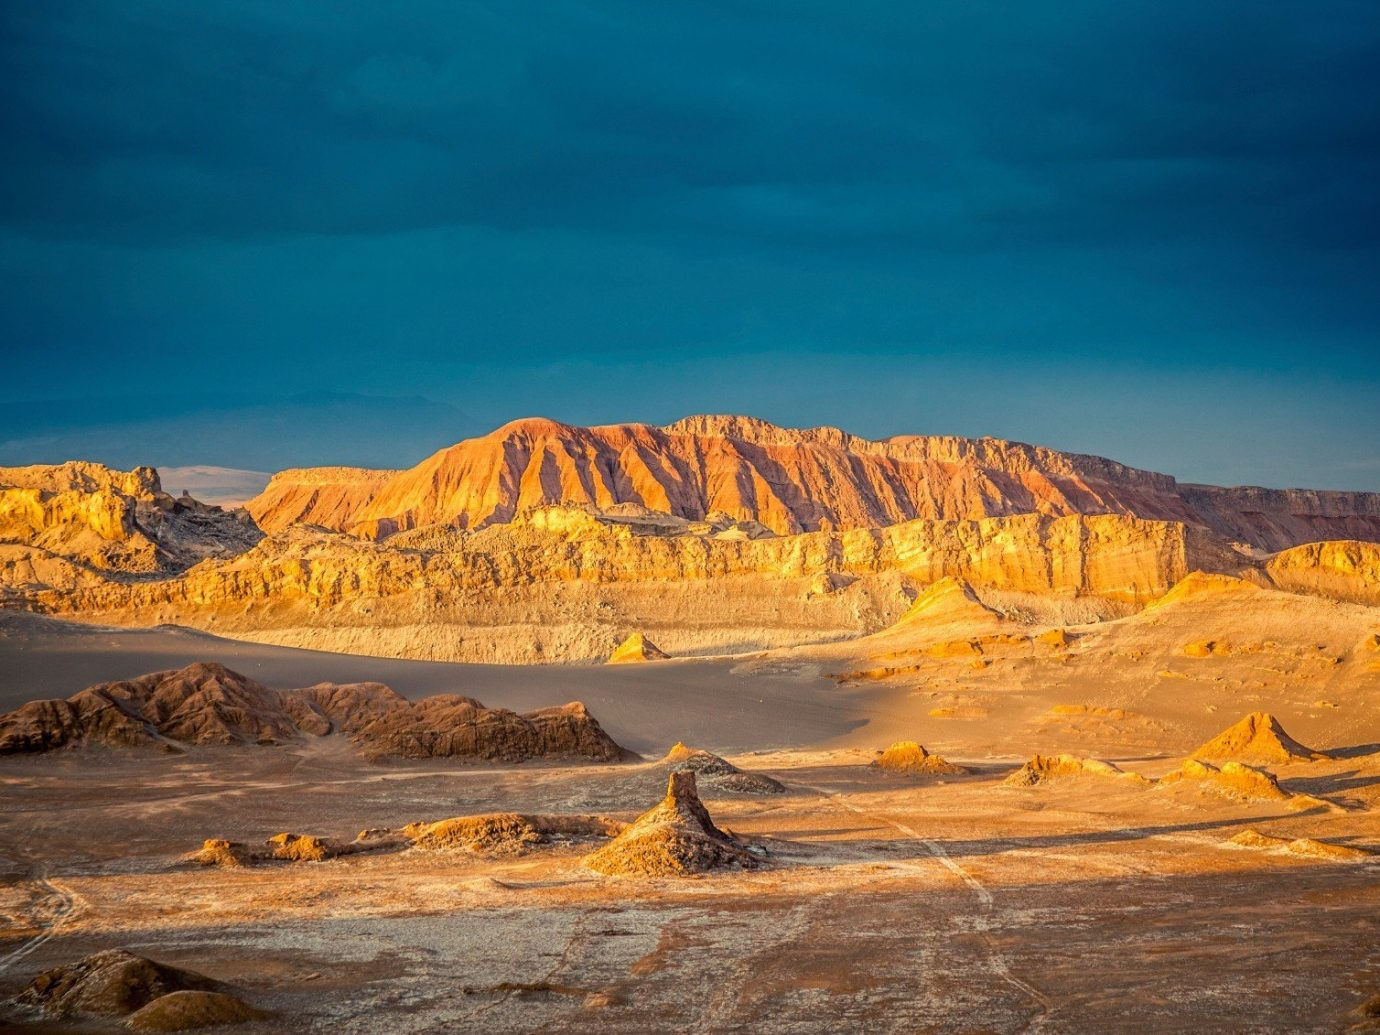 Trip Ideas Nature sky outdoor mountainous landforms geographical feature landform natural environment wilderness canyon rock valley mountain landscape badlands sunrise Sunset wadi Desert plateau butte orange Coast terrain dawn Sea geology dusk formation aeolian landform cliff